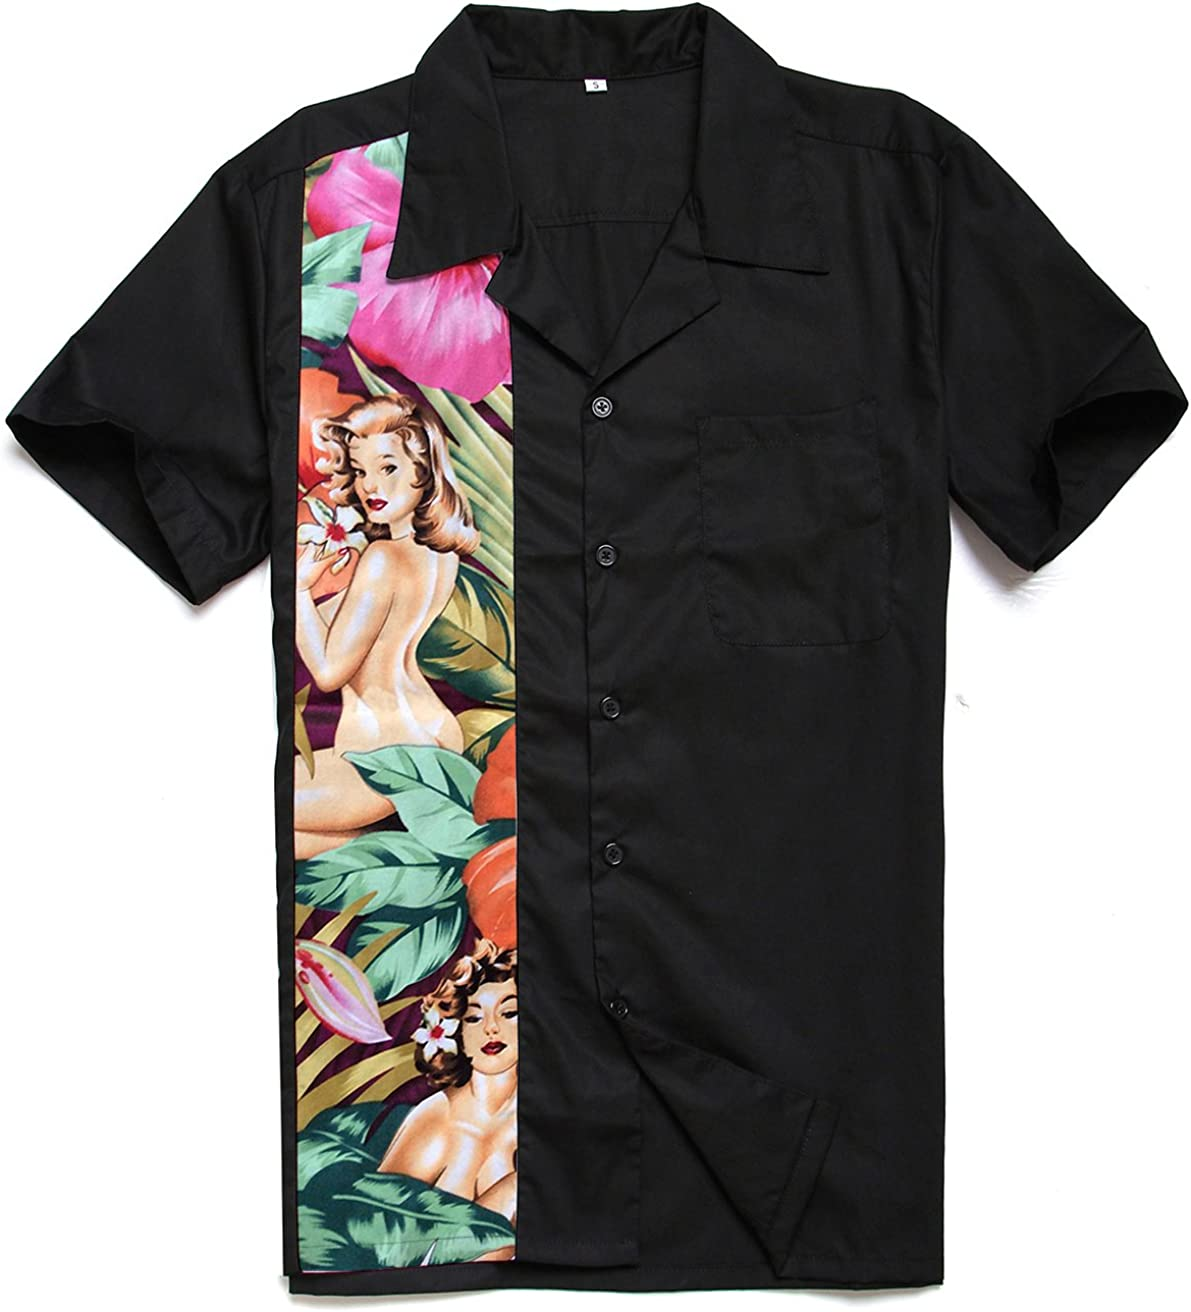 Candow Look Men Shirt Free Shipping New Floral Nude Inventory cleanup selling sale Cotton S Print Size Plus Panel